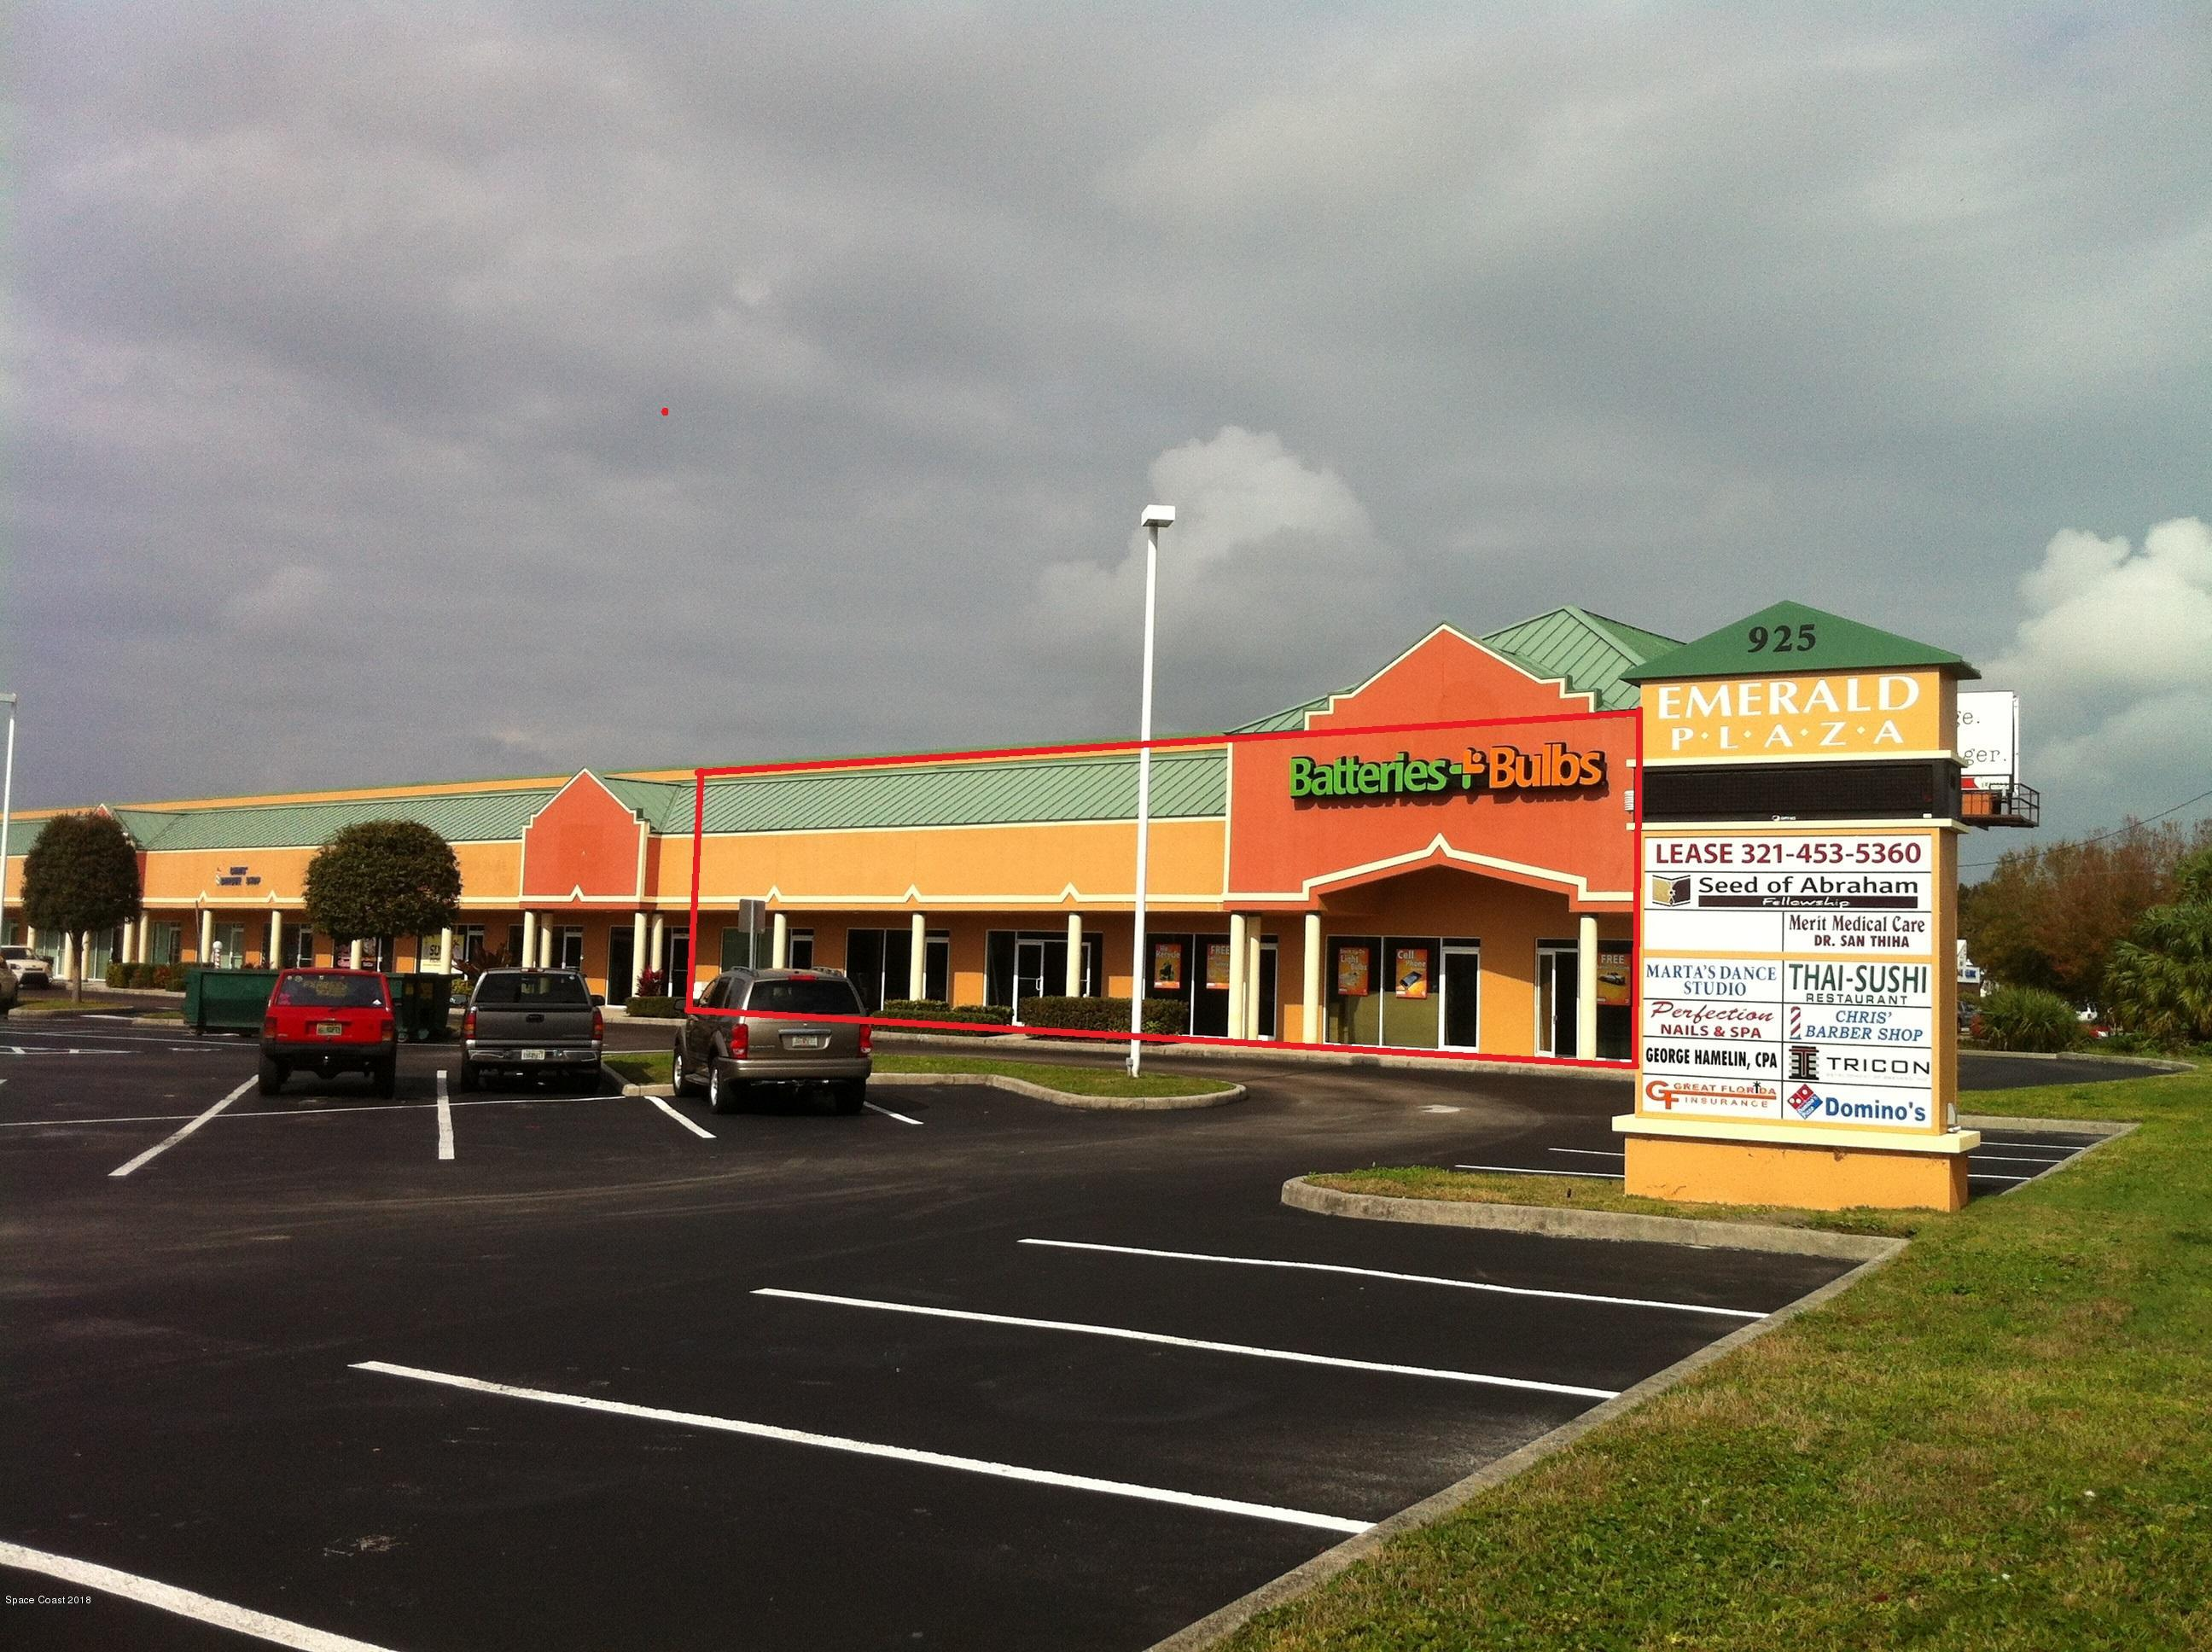 Commercial for Rent at 925 N Courtenay 925 N Courtenay Merritt Island, Florida 32953 United States